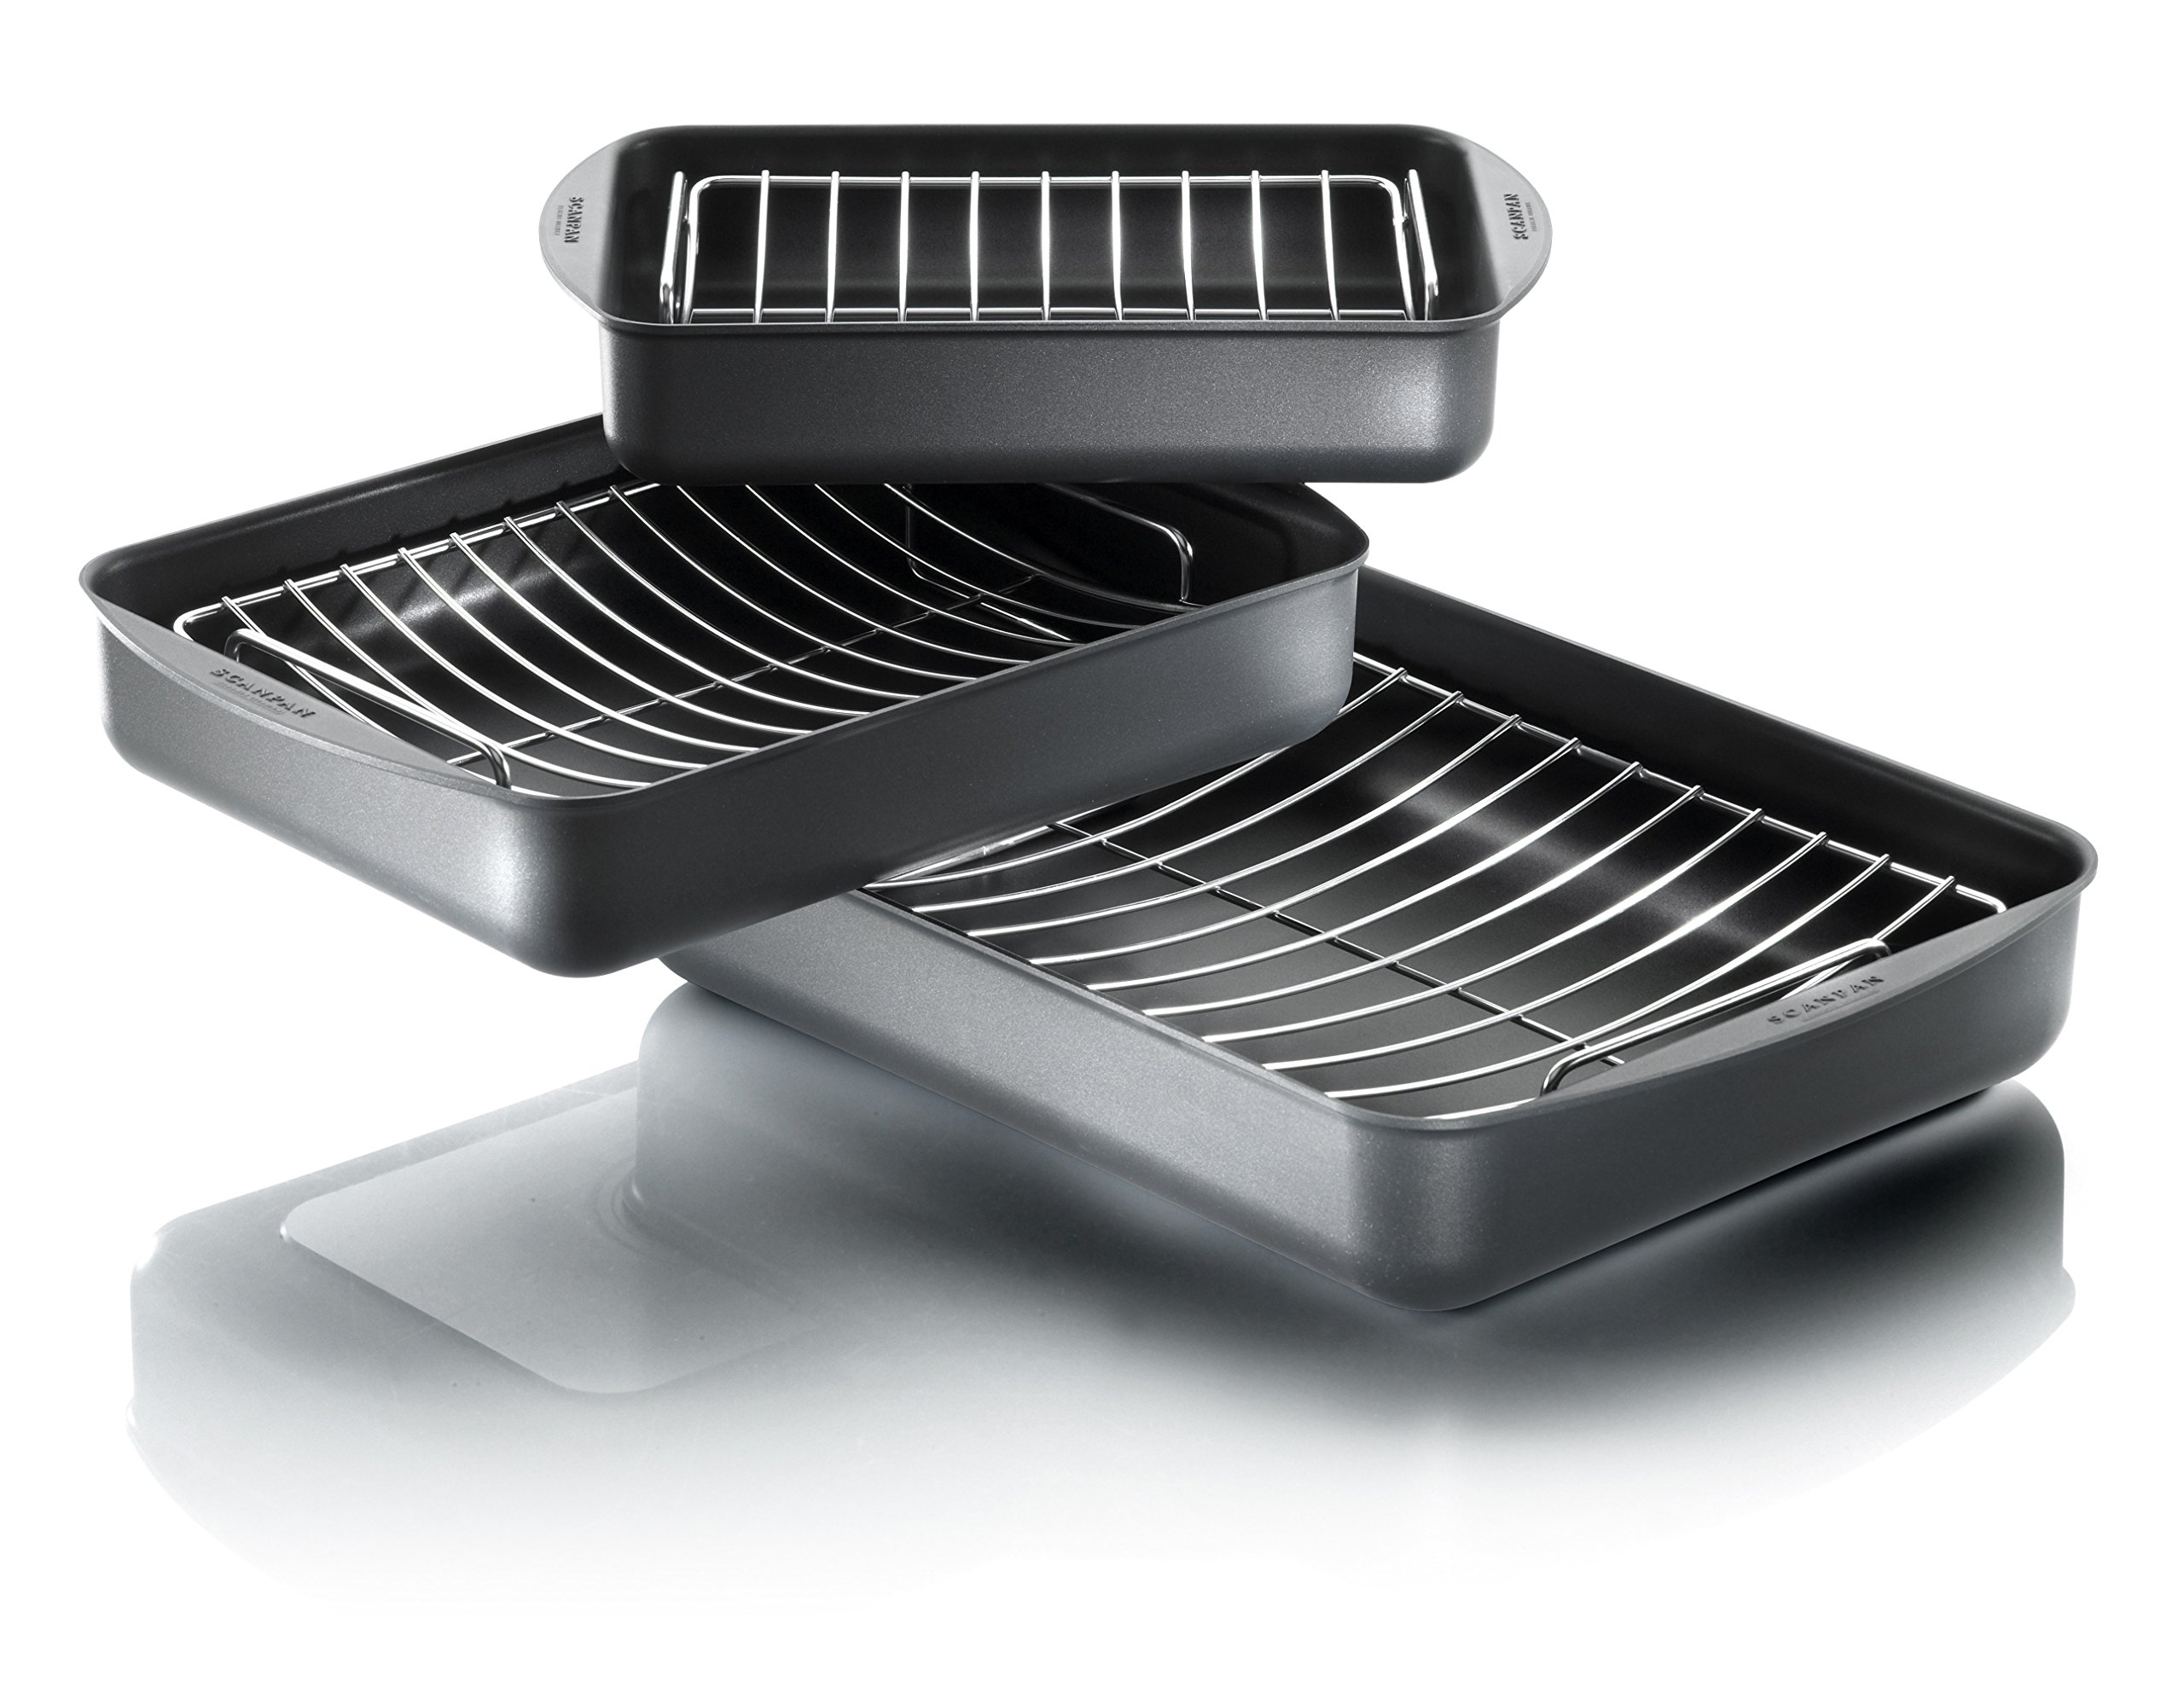 Scanpan Classic Roasting Pan, 3.25 QT, 13.5'' x 8.75'' by Scanpan (Image #4)